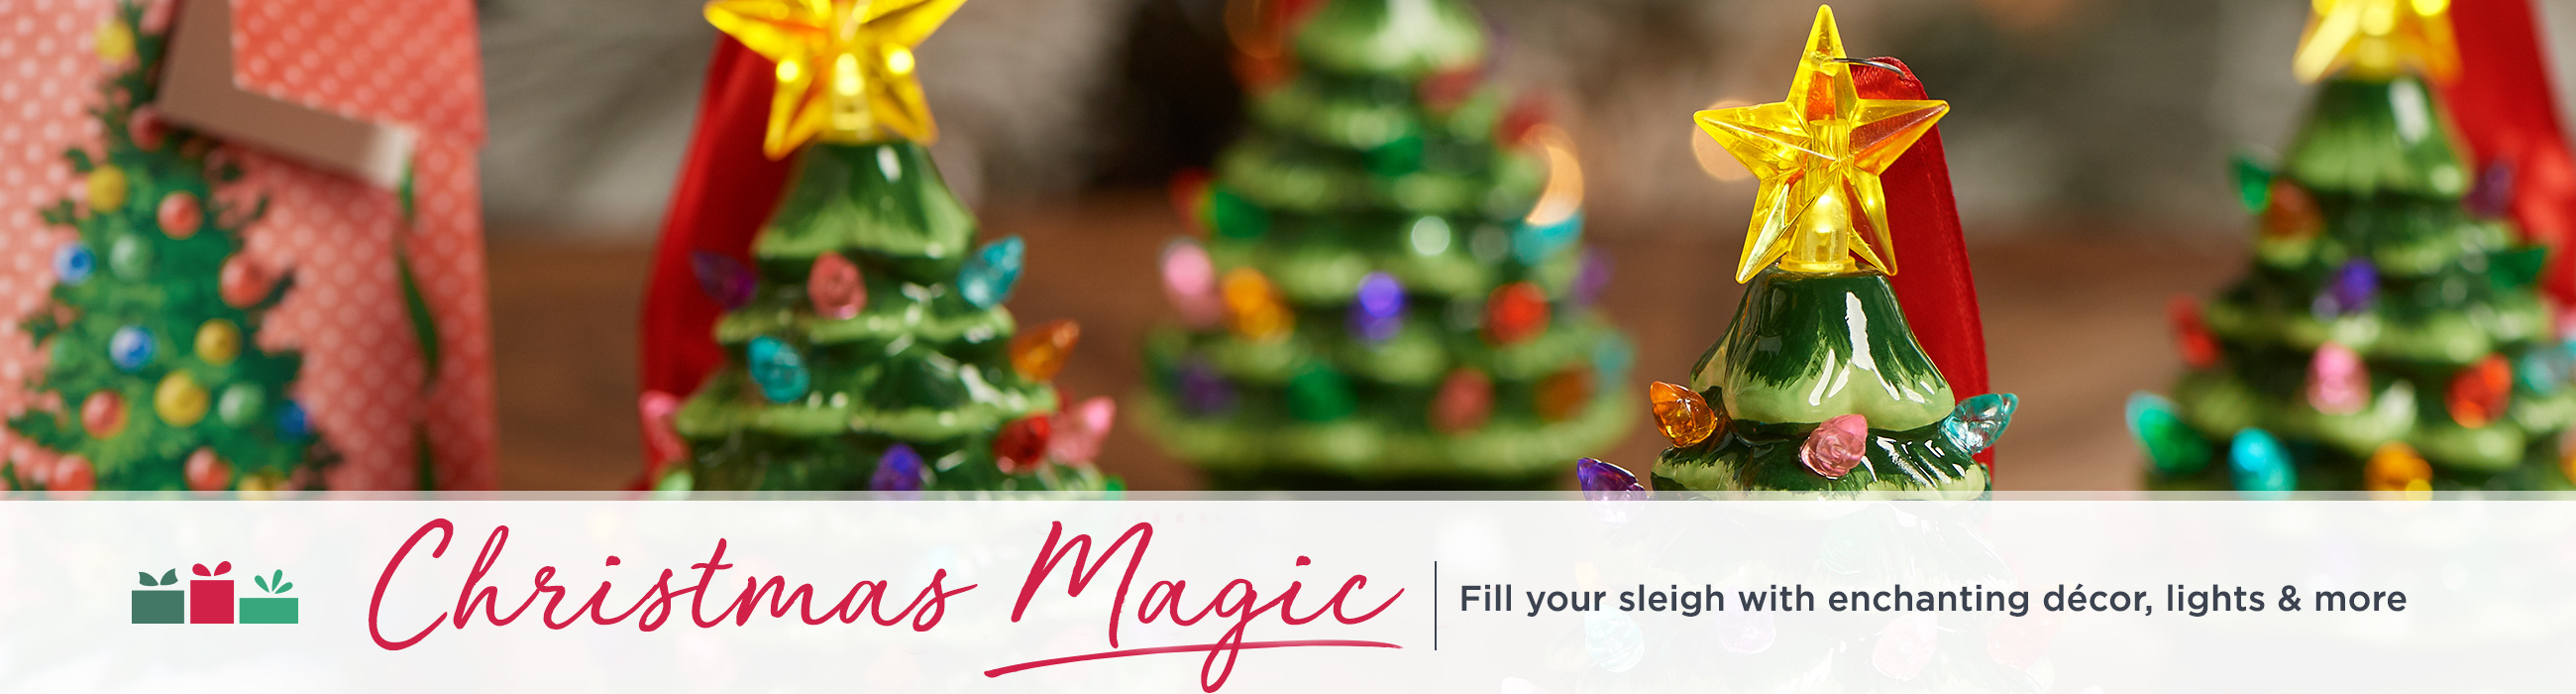 christmas magic fill your sleigh with enchanting dcor lights more